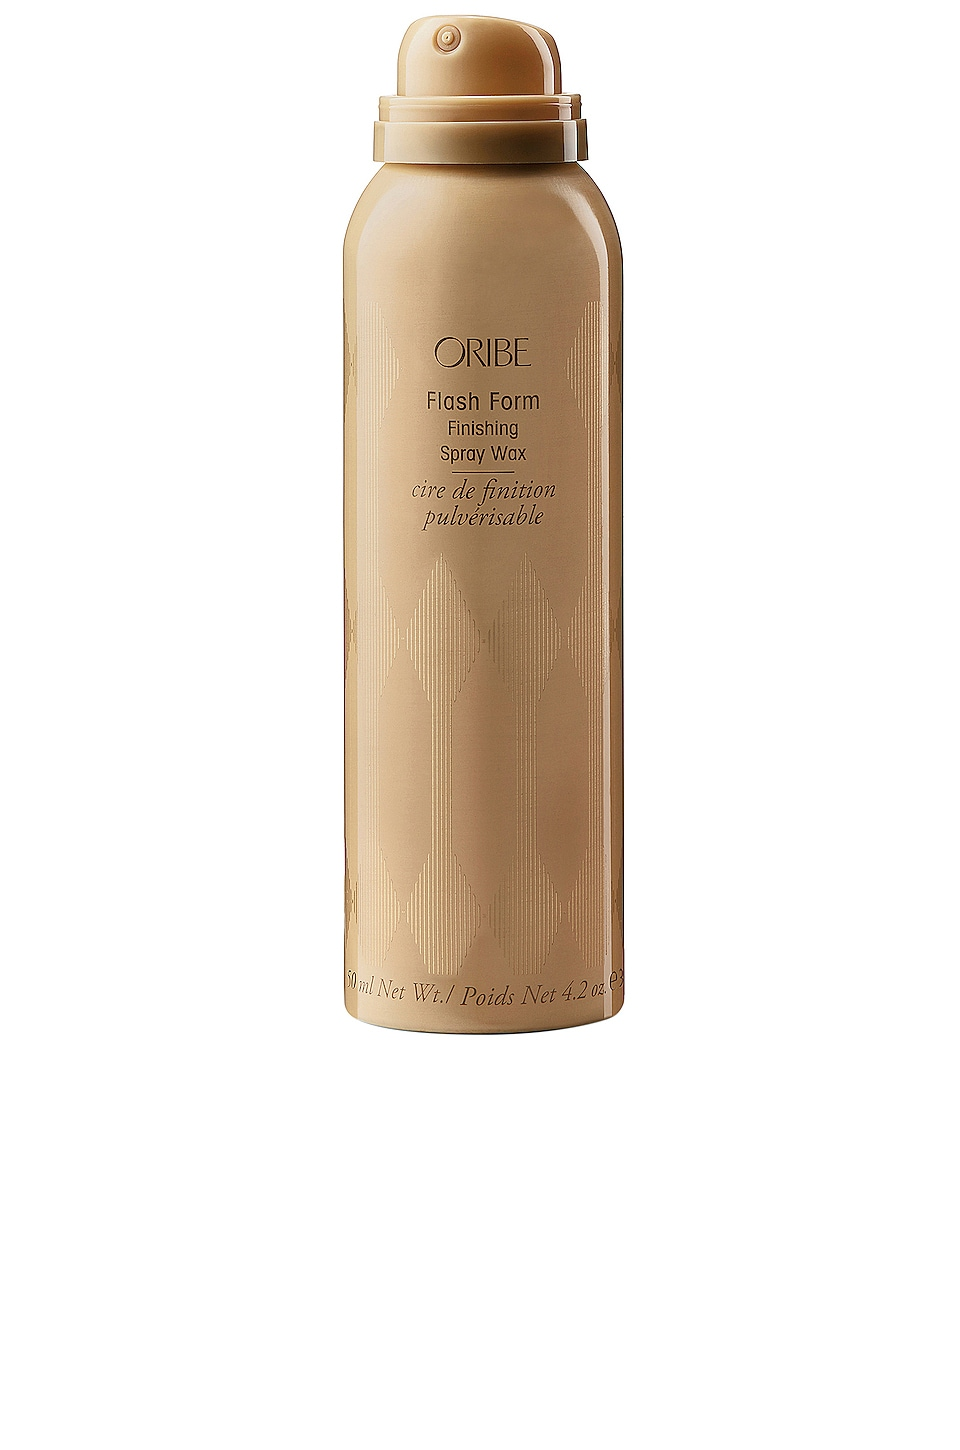 Oribe CERA PARA EL CABELLO FLASH FORM FINISHING SPRAY WAX